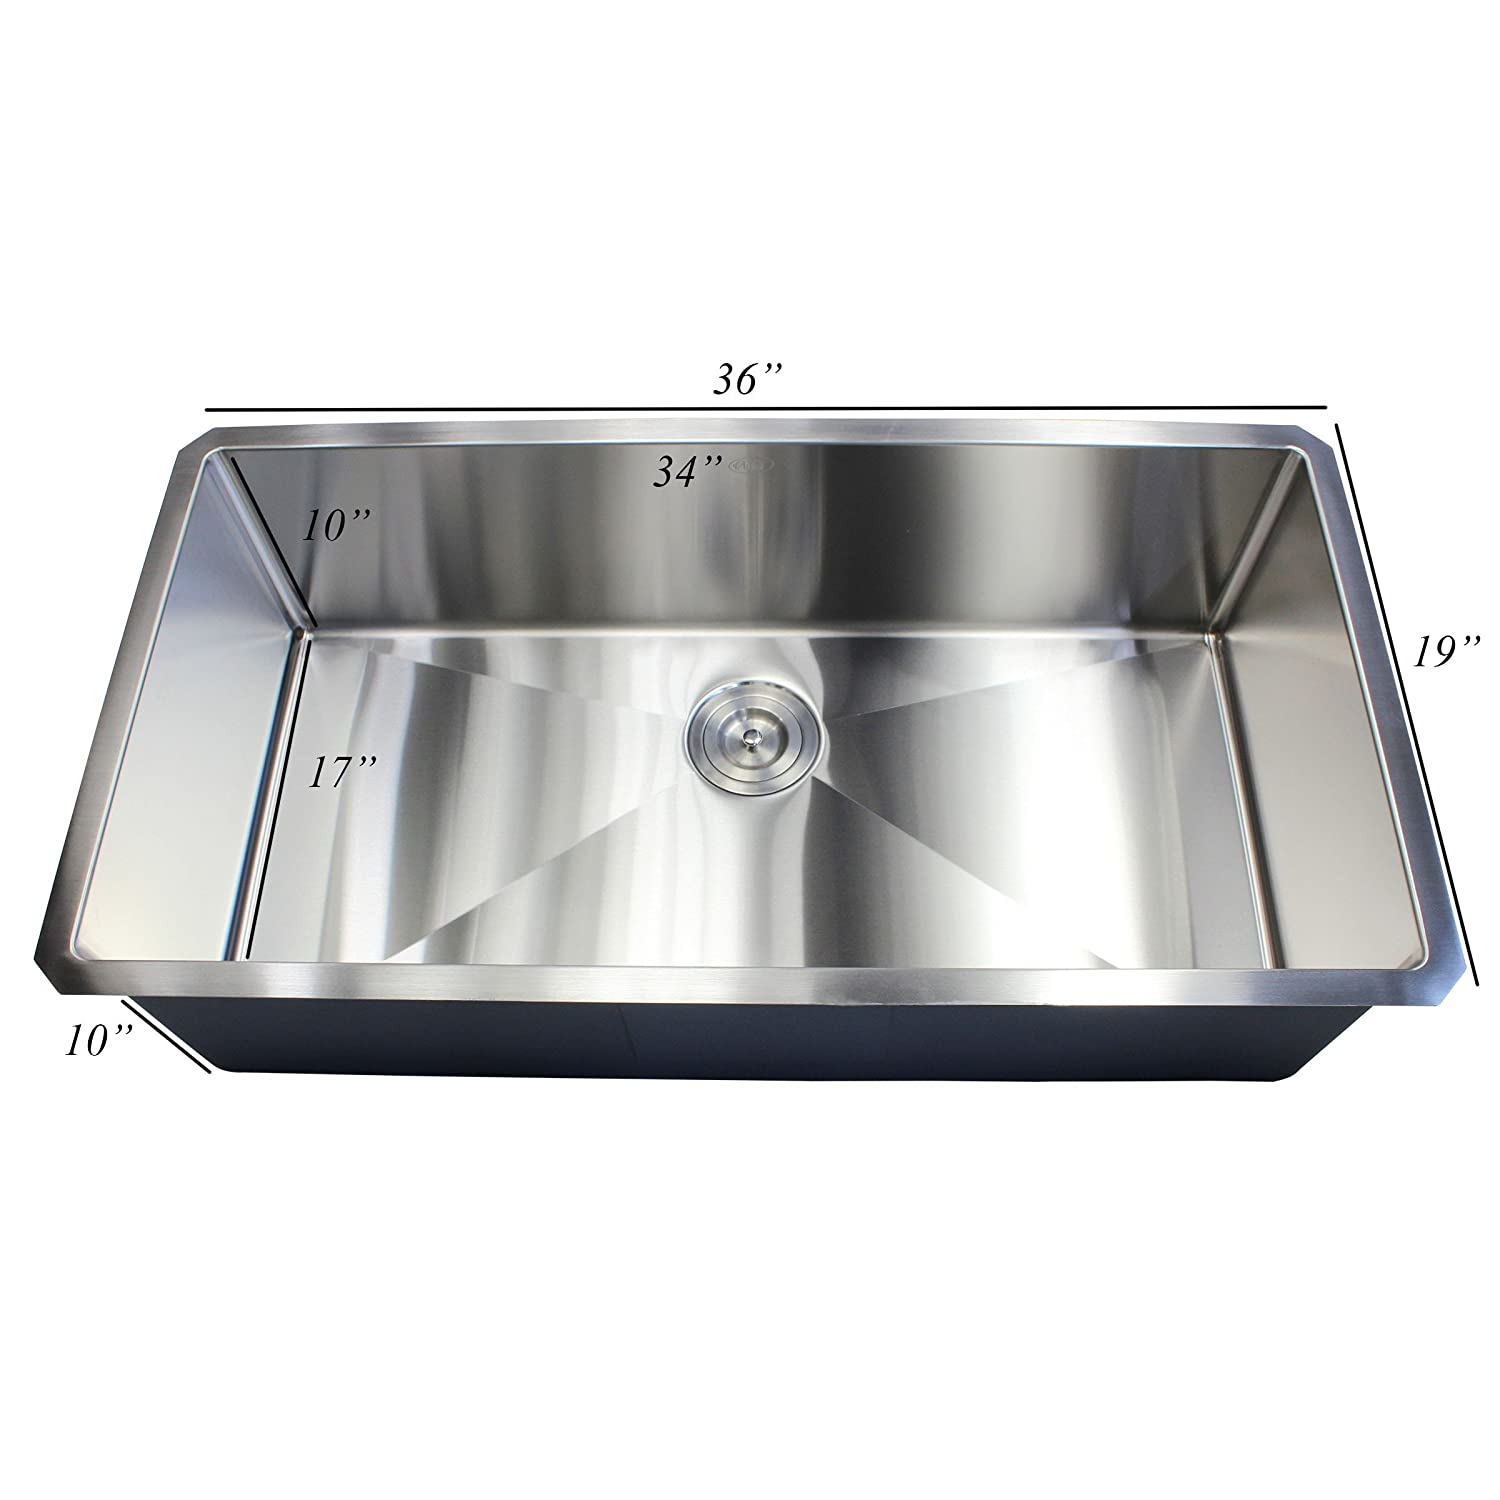 ARIEL - 36 Inch Stainless Steel Undermount Single Bowl ...